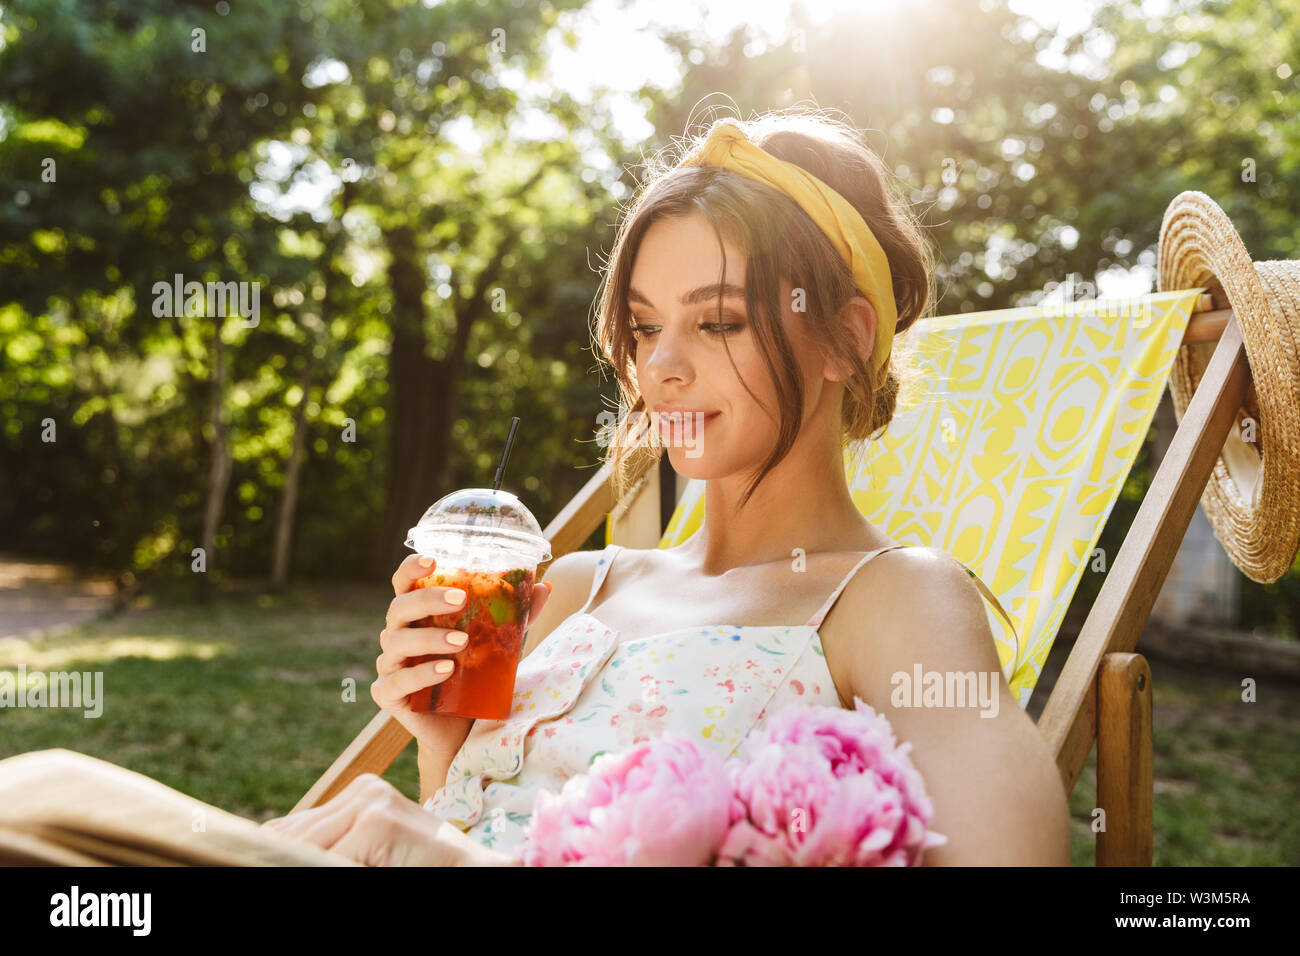 Image of a beautiful young amazing woman in green park drinking juice lies on sun bed reading book. - Stock Image